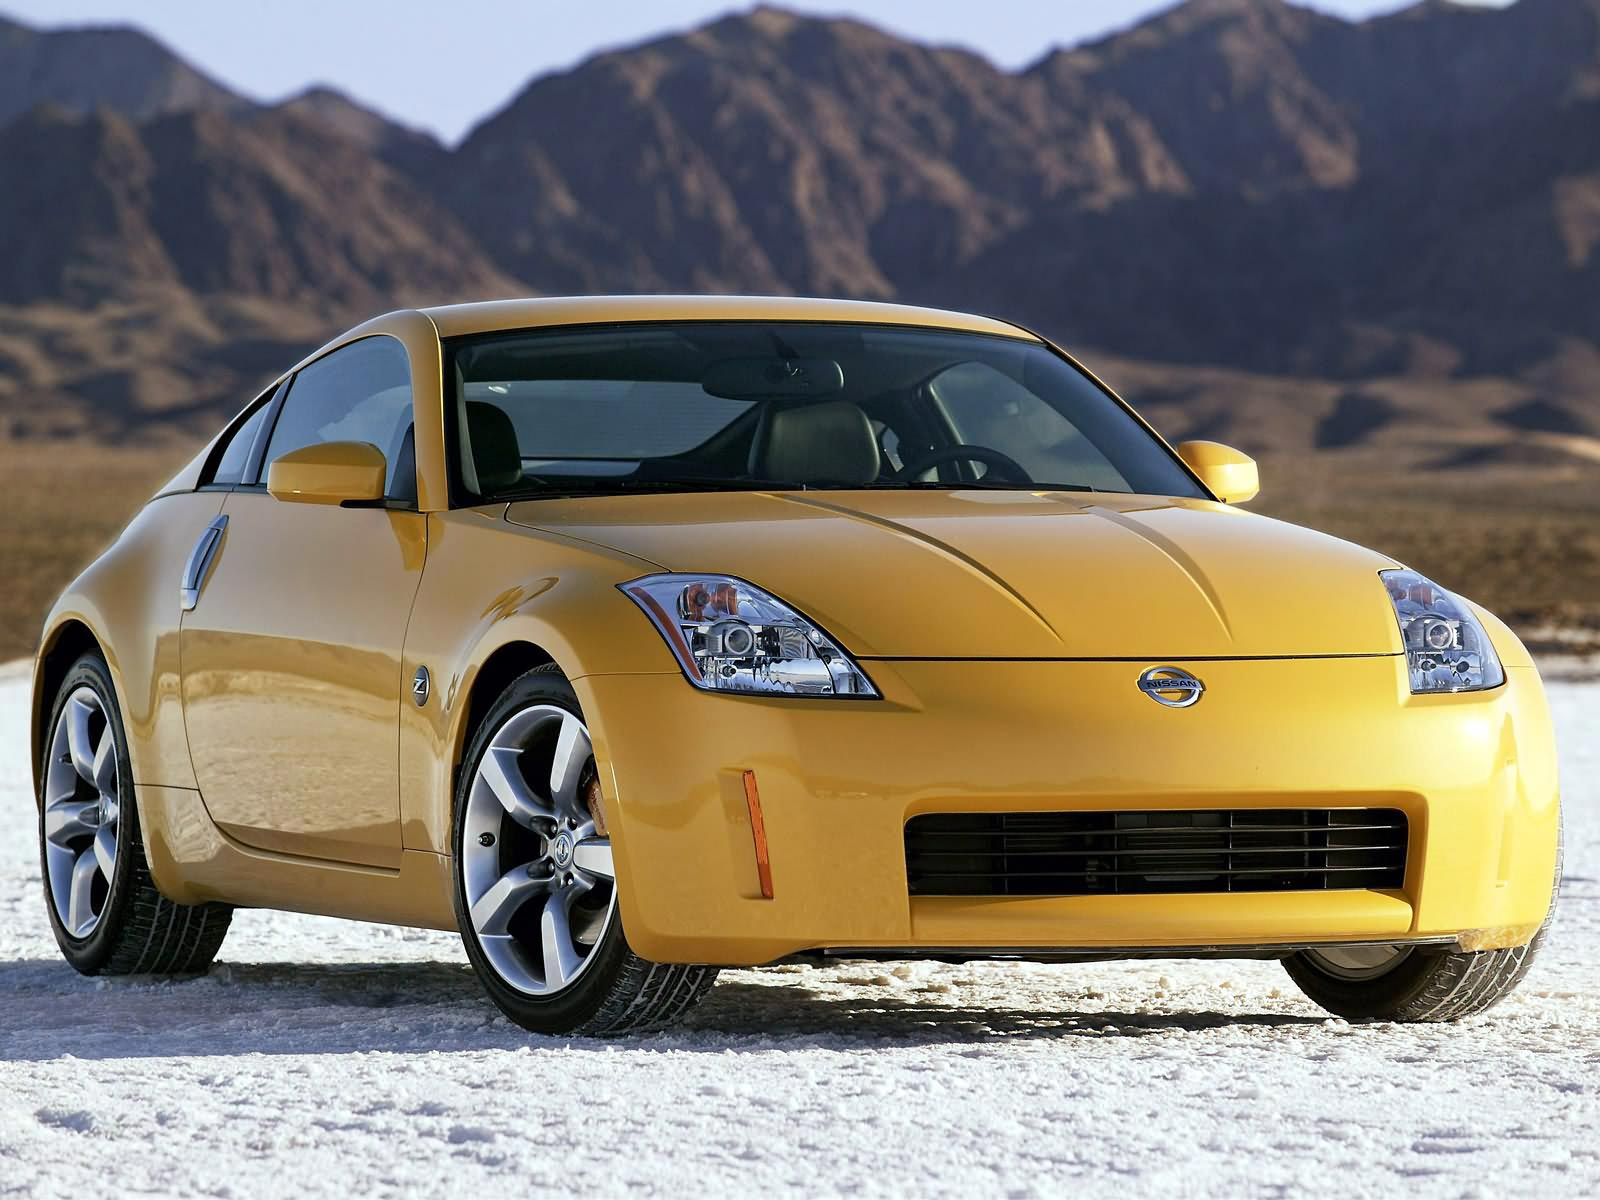 Used Sports Cars Lovely Used Nissan 350z Z33 Sports Cars for Sale